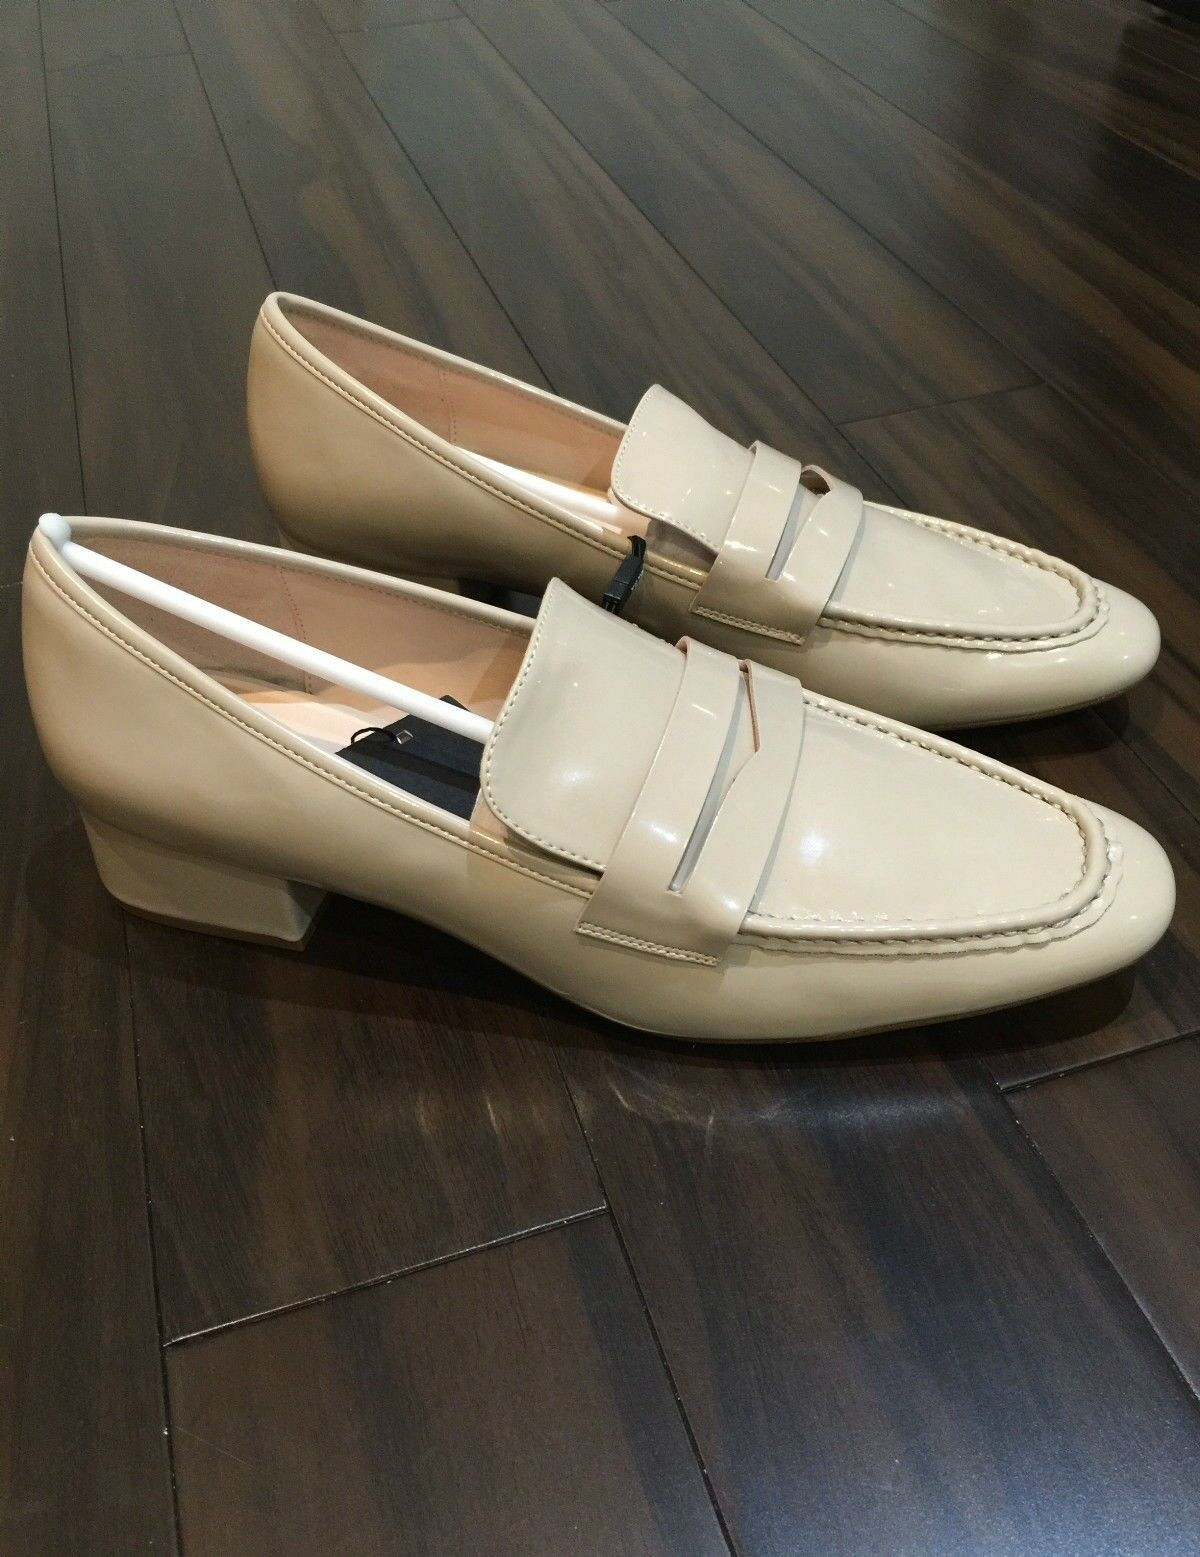 NEW ZARA BEIGE PATENT LOW HEELED LOAFERS SHOES SIZE UK 8 EU 41 USA 10